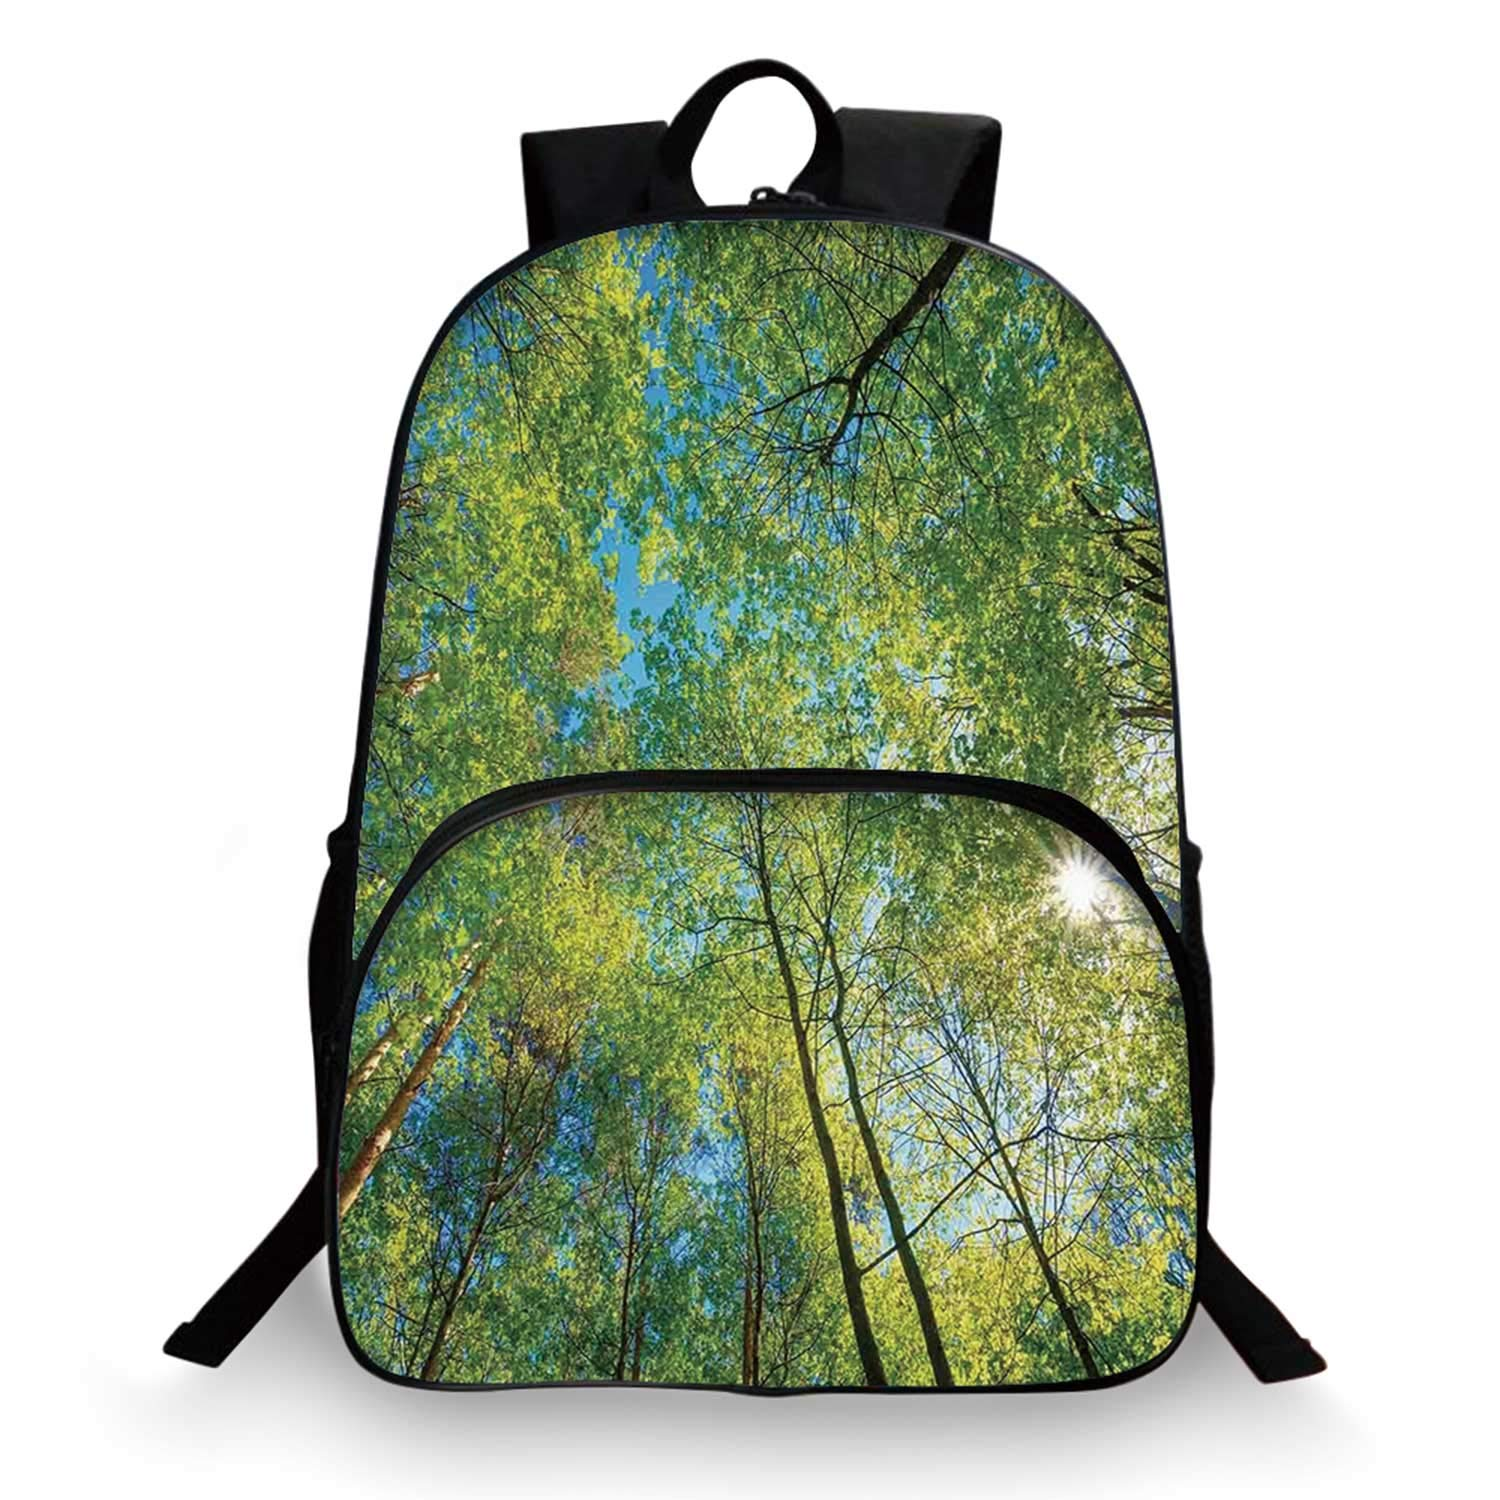 Forest Home Decor Various Schoolbag,Evergreen Back Nature Area Mother Earth Lime Trunk Mangrove Flora Willow Decor for student,11''Lx6''Wx15''H by C COABALLA